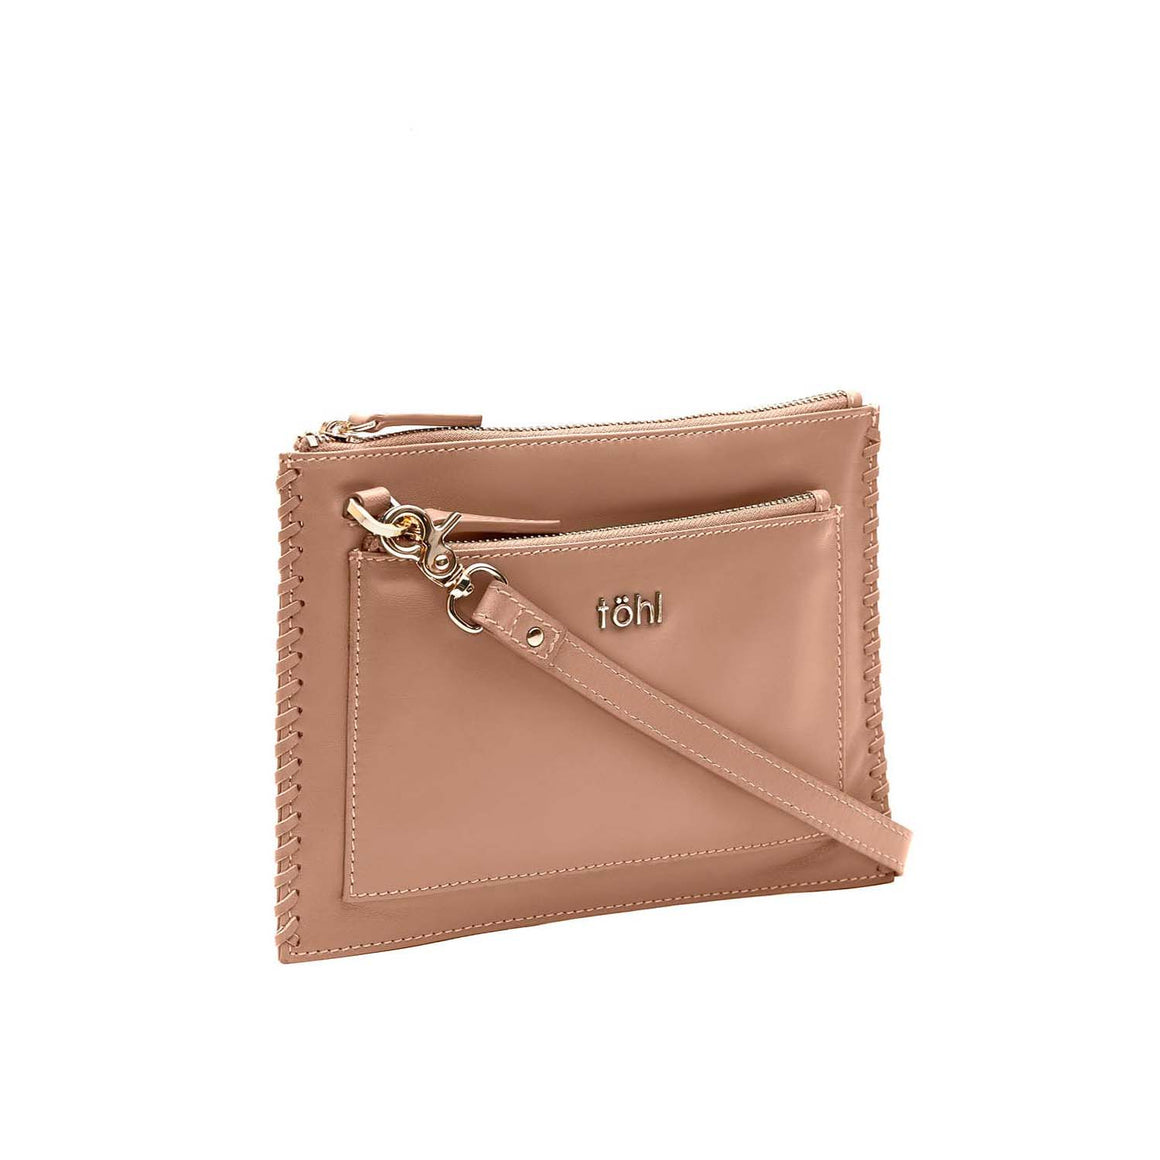 SG 0024 - TOHL ANMER WOMEN'S SLING & CROSSBODY BAG - NUDE